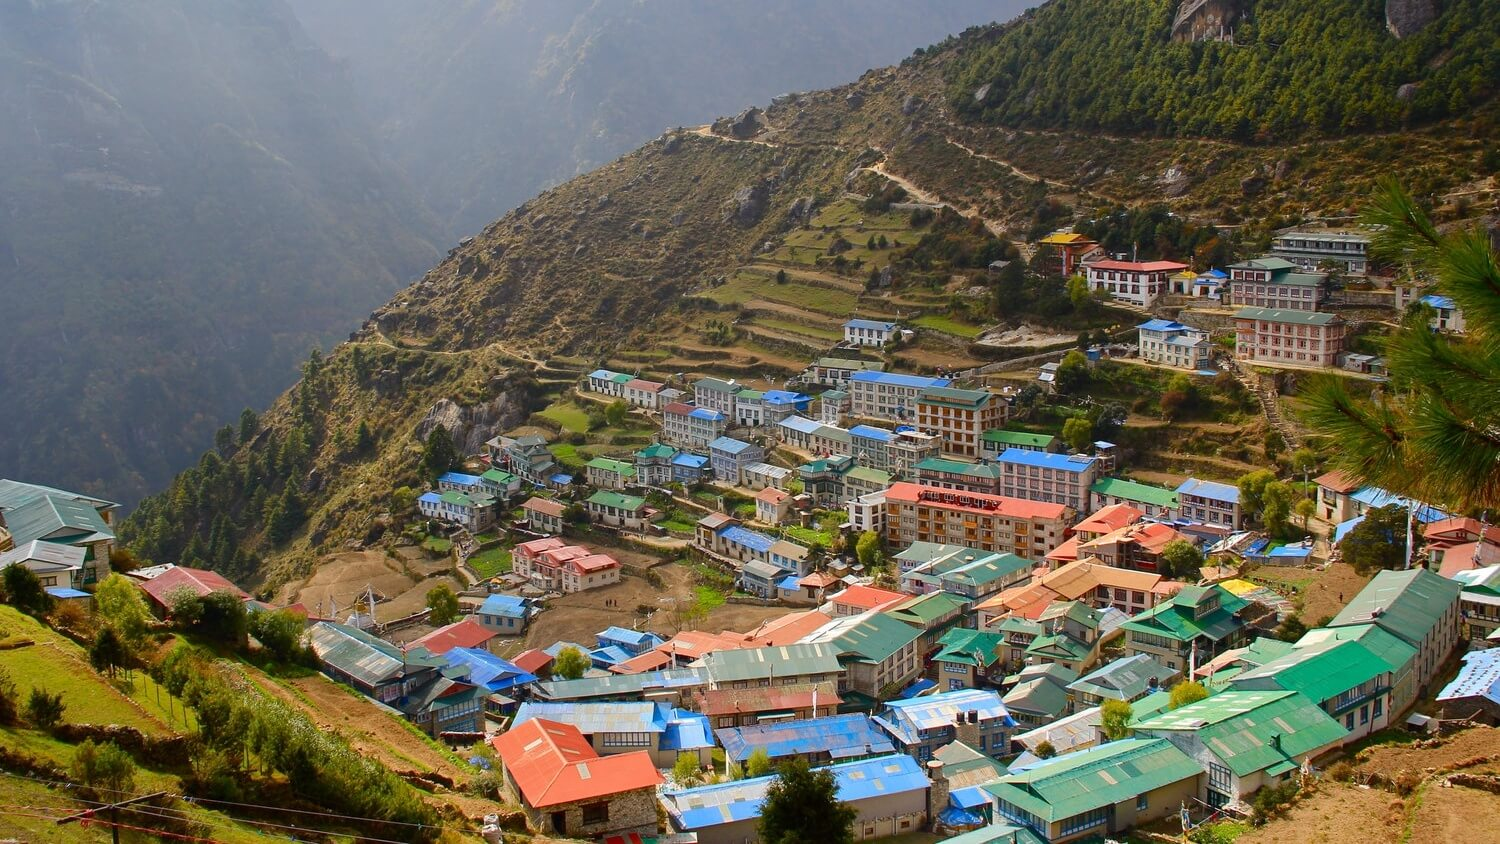 5 Travel Tips for Finding Vegan Food Options in Nepal